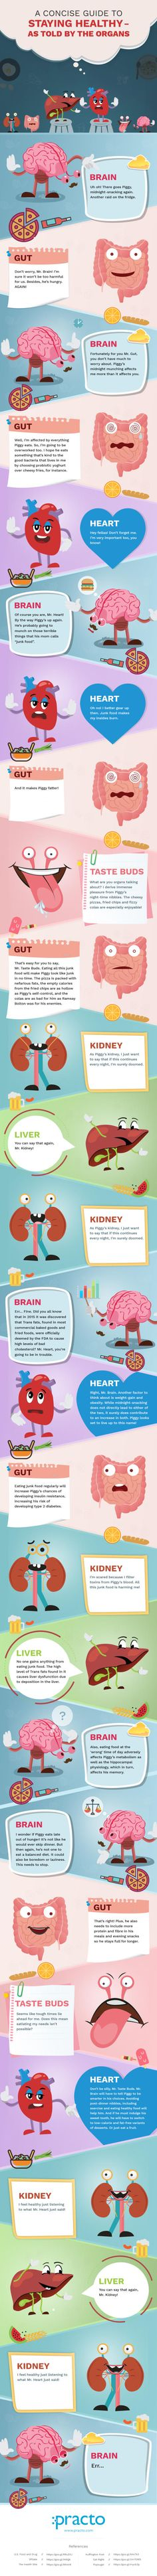 A Concise Guide to Staying Healthy As Told By Organs [Infographic] Health And Nutrition, Health And Wellness, Health Tips, Health Care, Health Fitness, Fitness Tips, Keeping Healthy, How To Stay Healthy, Healthy Life